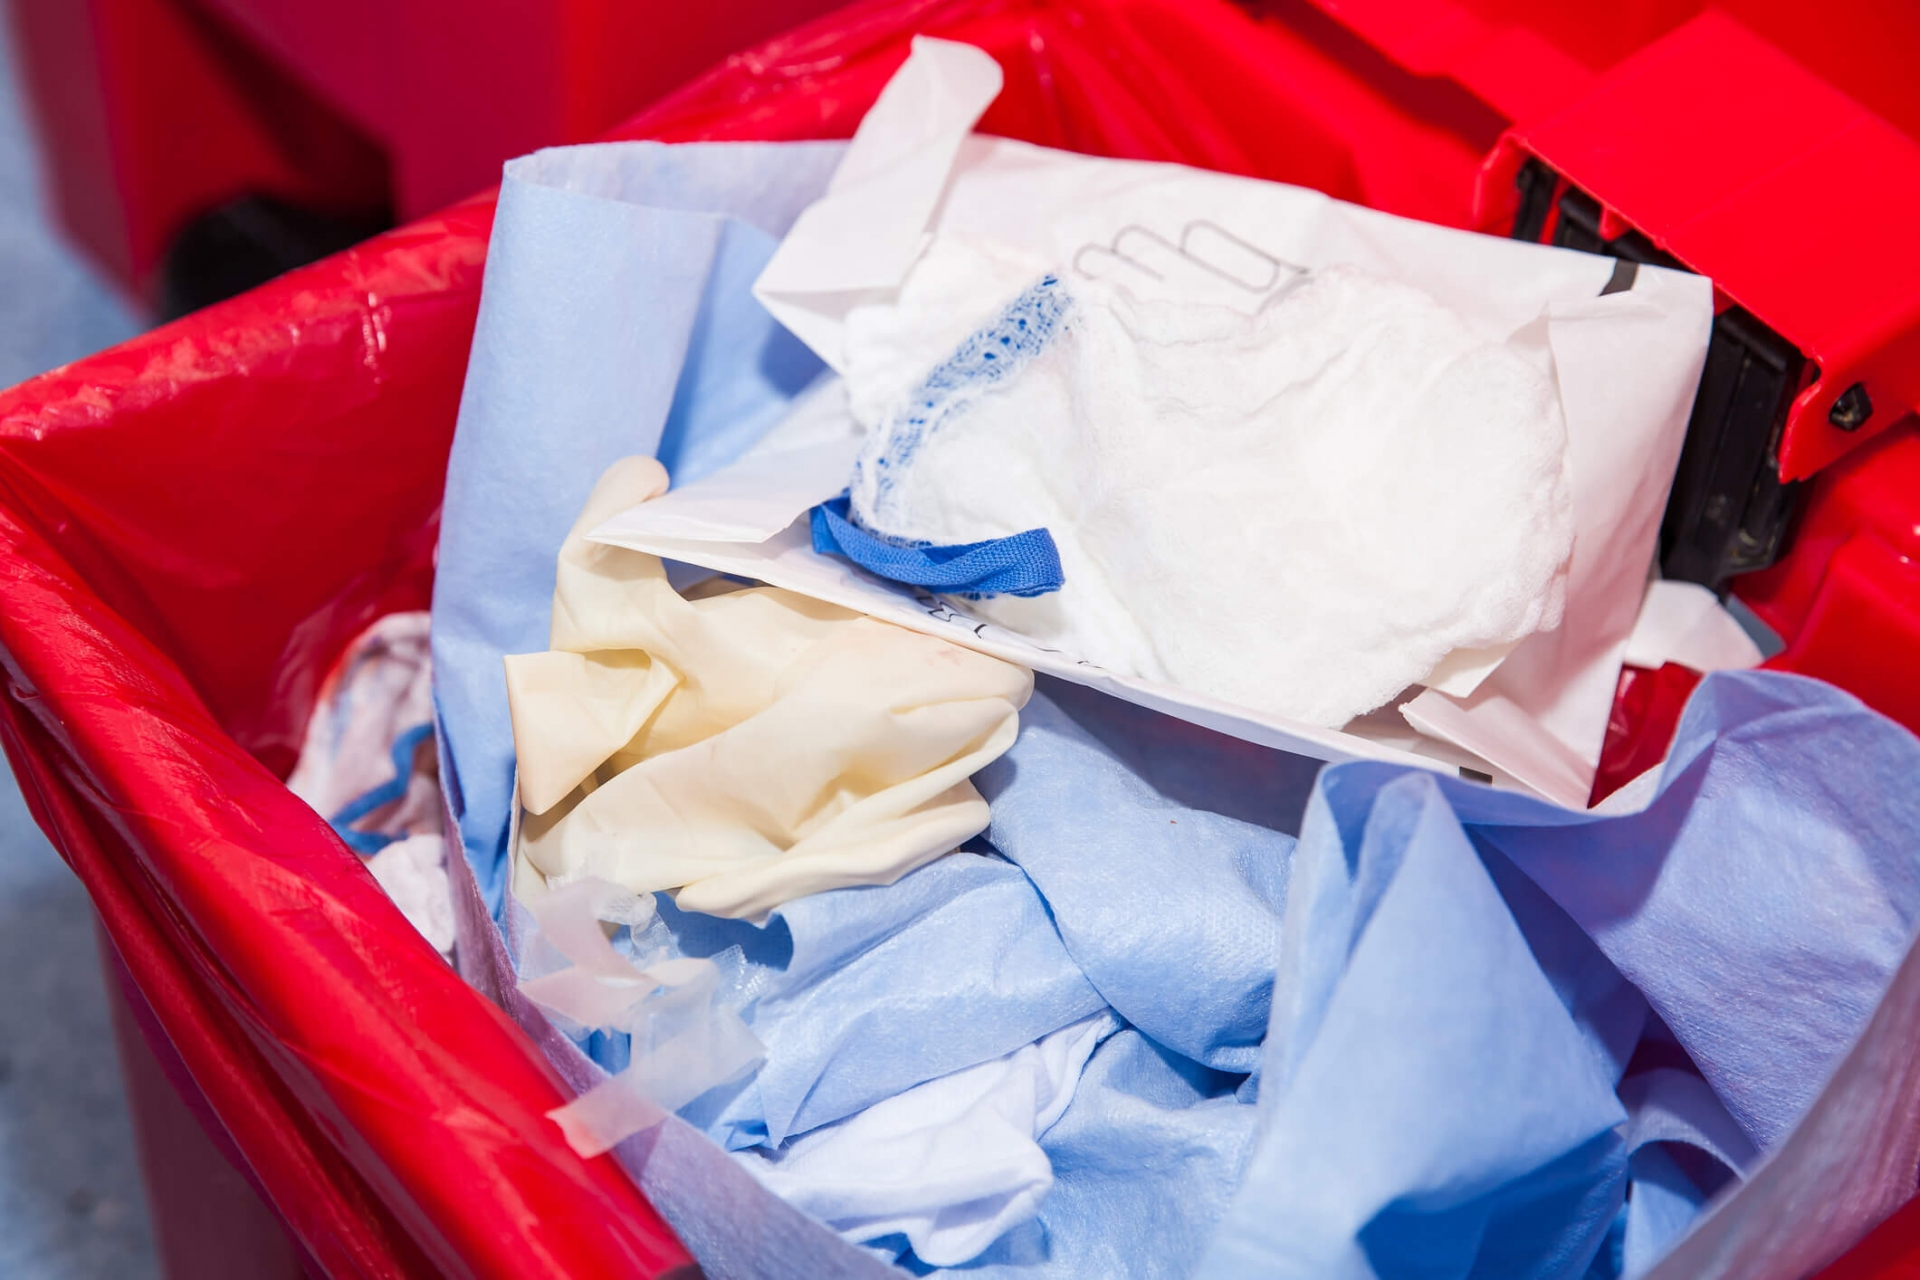 Ho Chi Minh city faces medical waste overload as pandemic surges